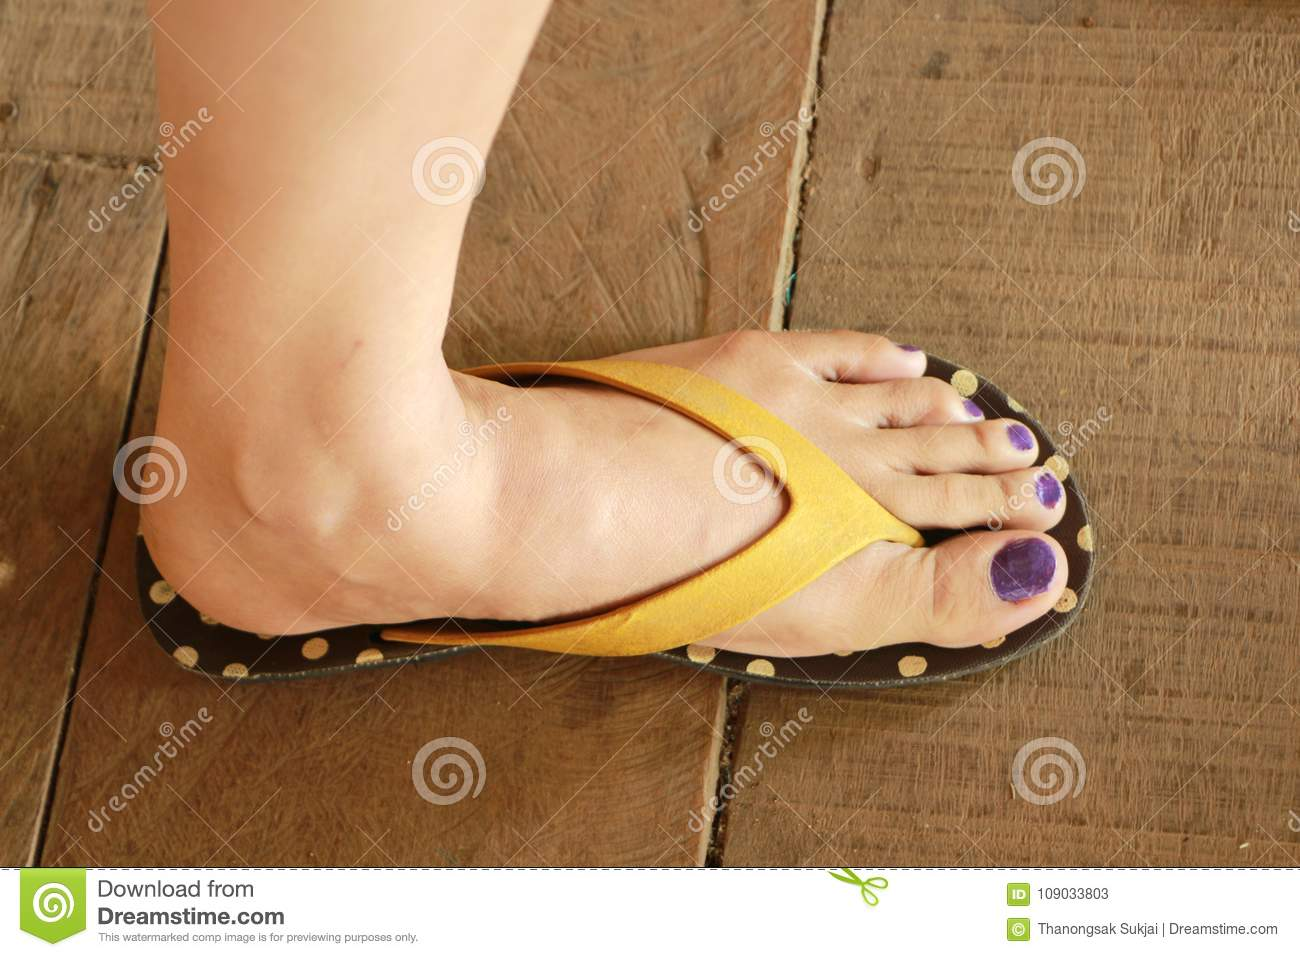 8fb409161 The Left Foot Of The Woman Wore Sandals Stand On The Wooden Floor ...